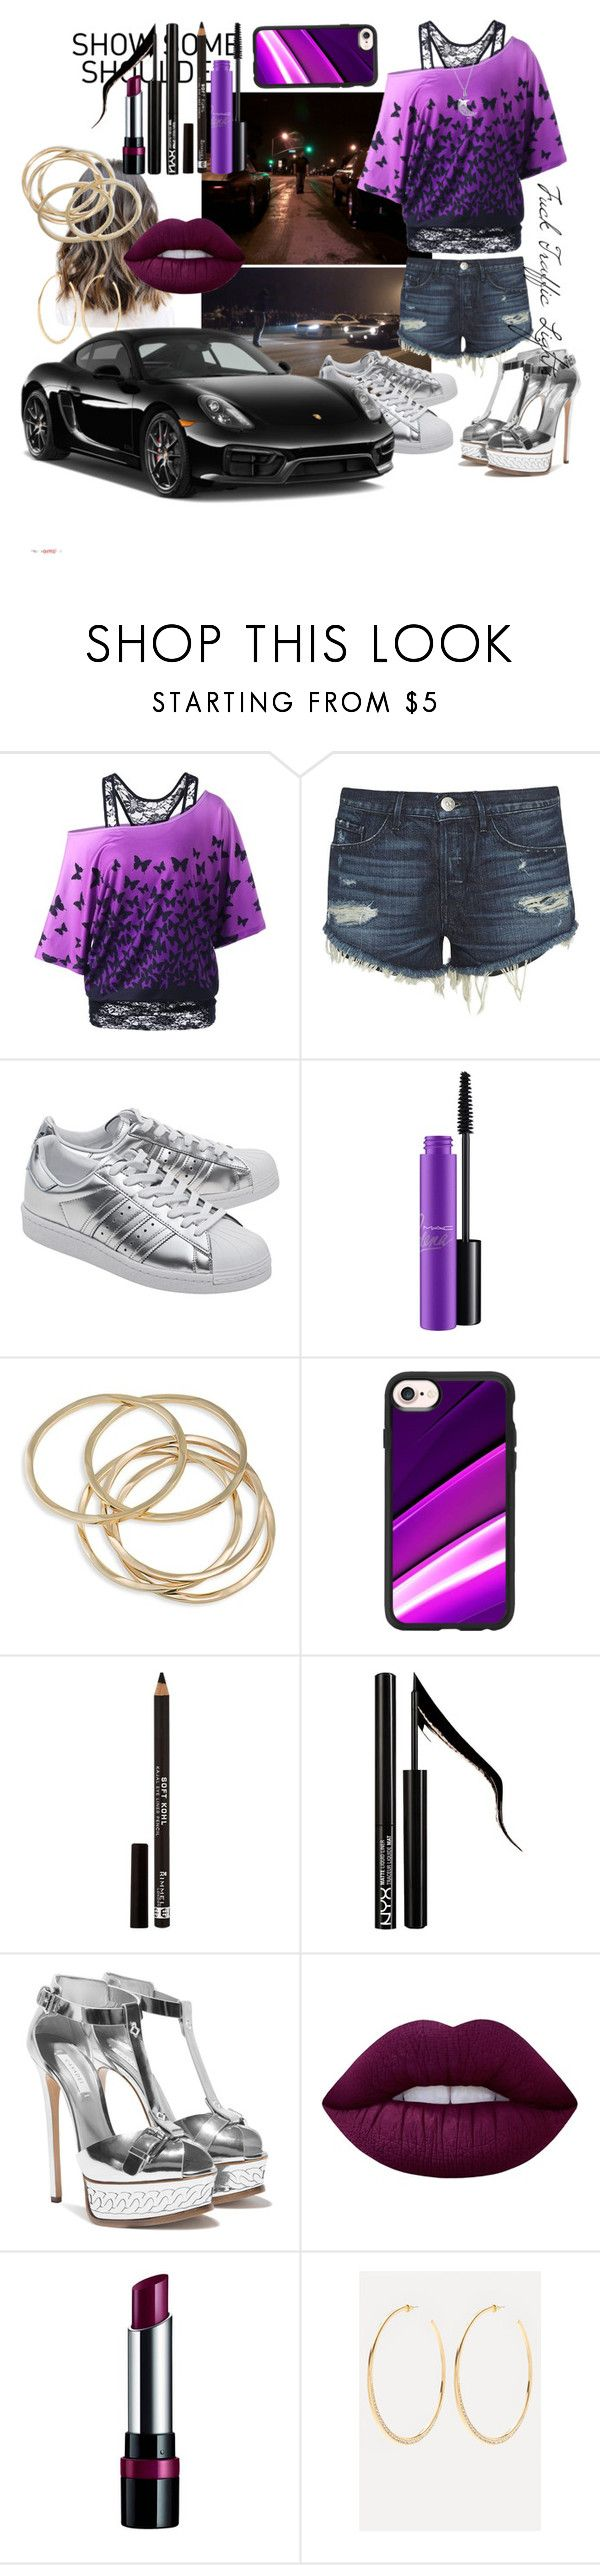 """""""073 Road Racer - Female Edition"""" by berry2206 on Polyvore featuring Mode, 3x1, adidas Originals, MAC Cosmetics, ABS by Allen Schwartz, Casetify, Rimmel, Forever 21, Lime Crime und Porsche"""